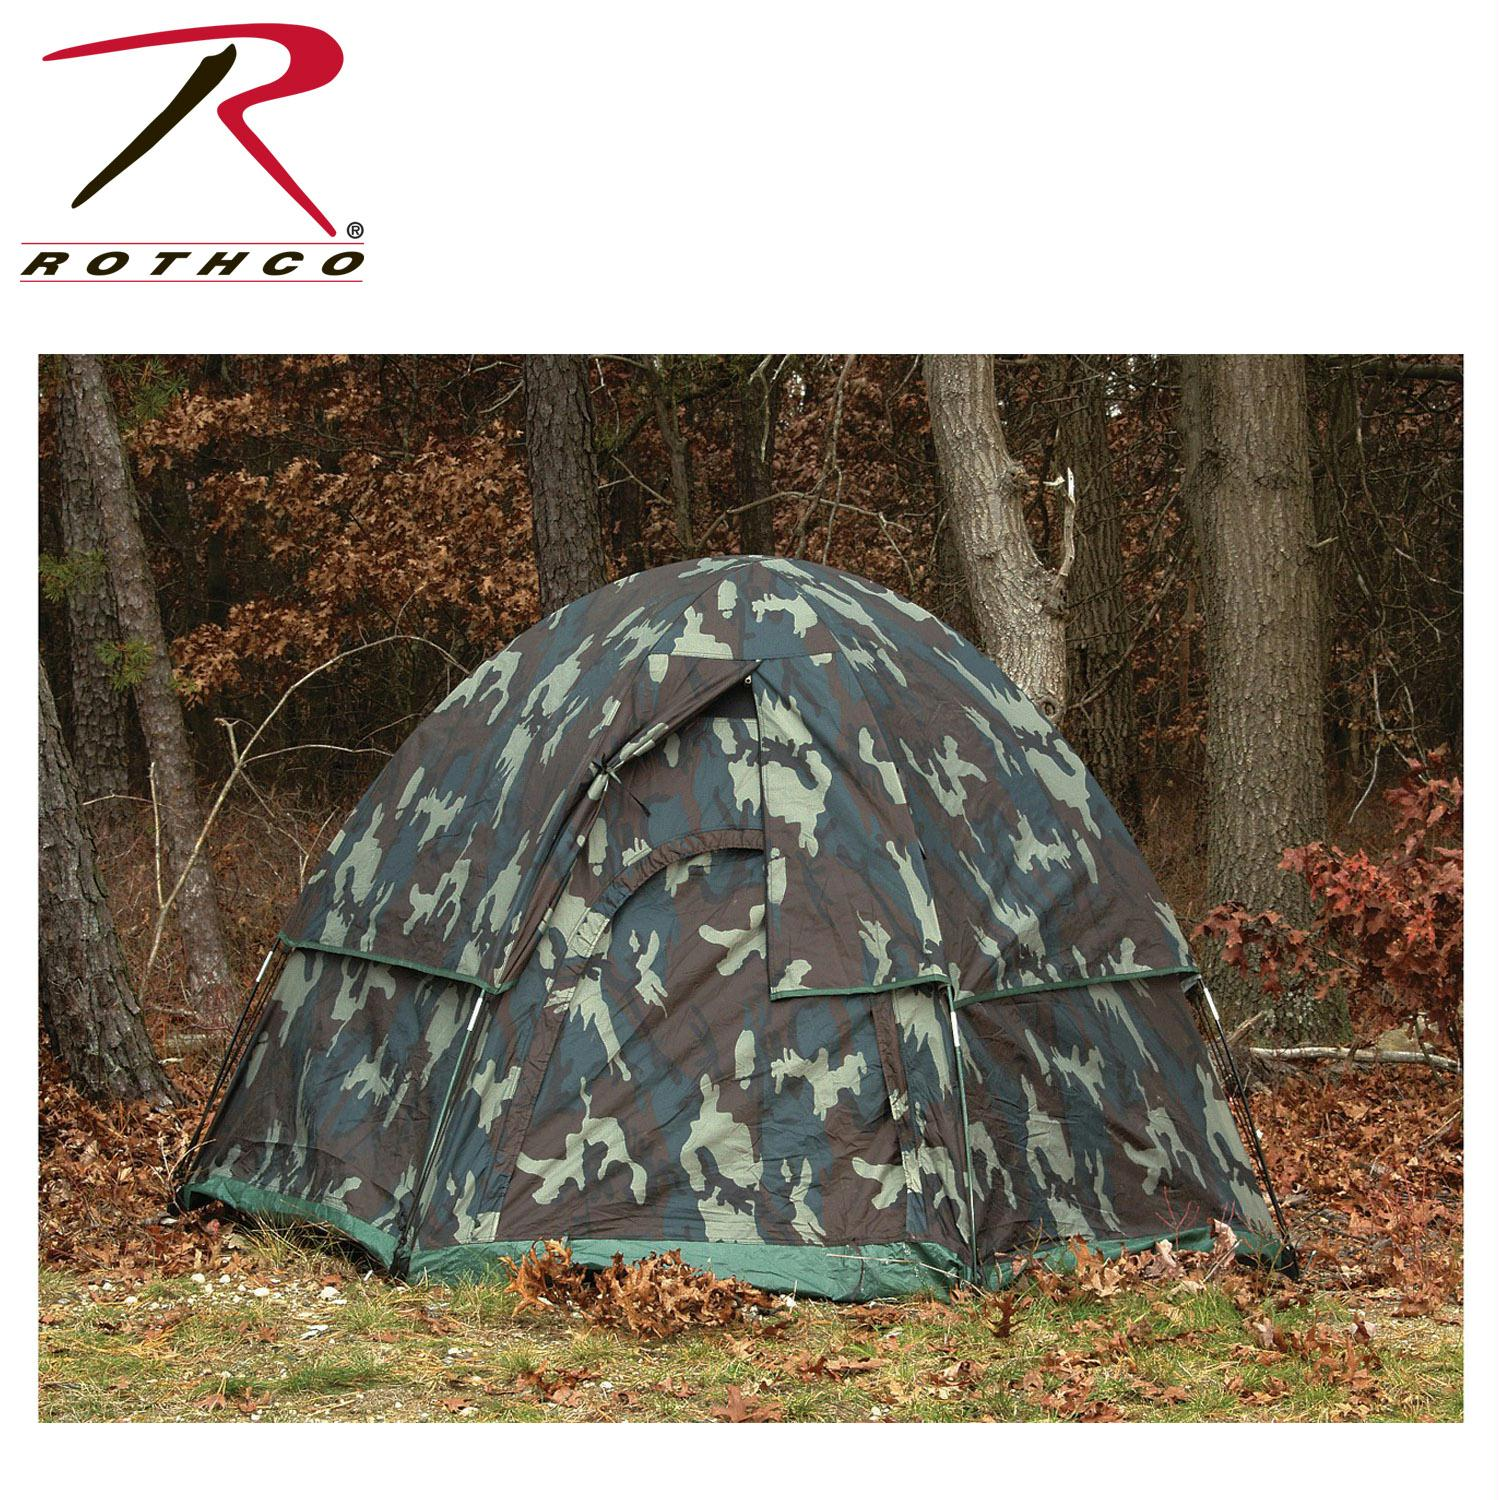 Rothco Camo 3-Man Hexagon Dome Tent - Woodland Camo